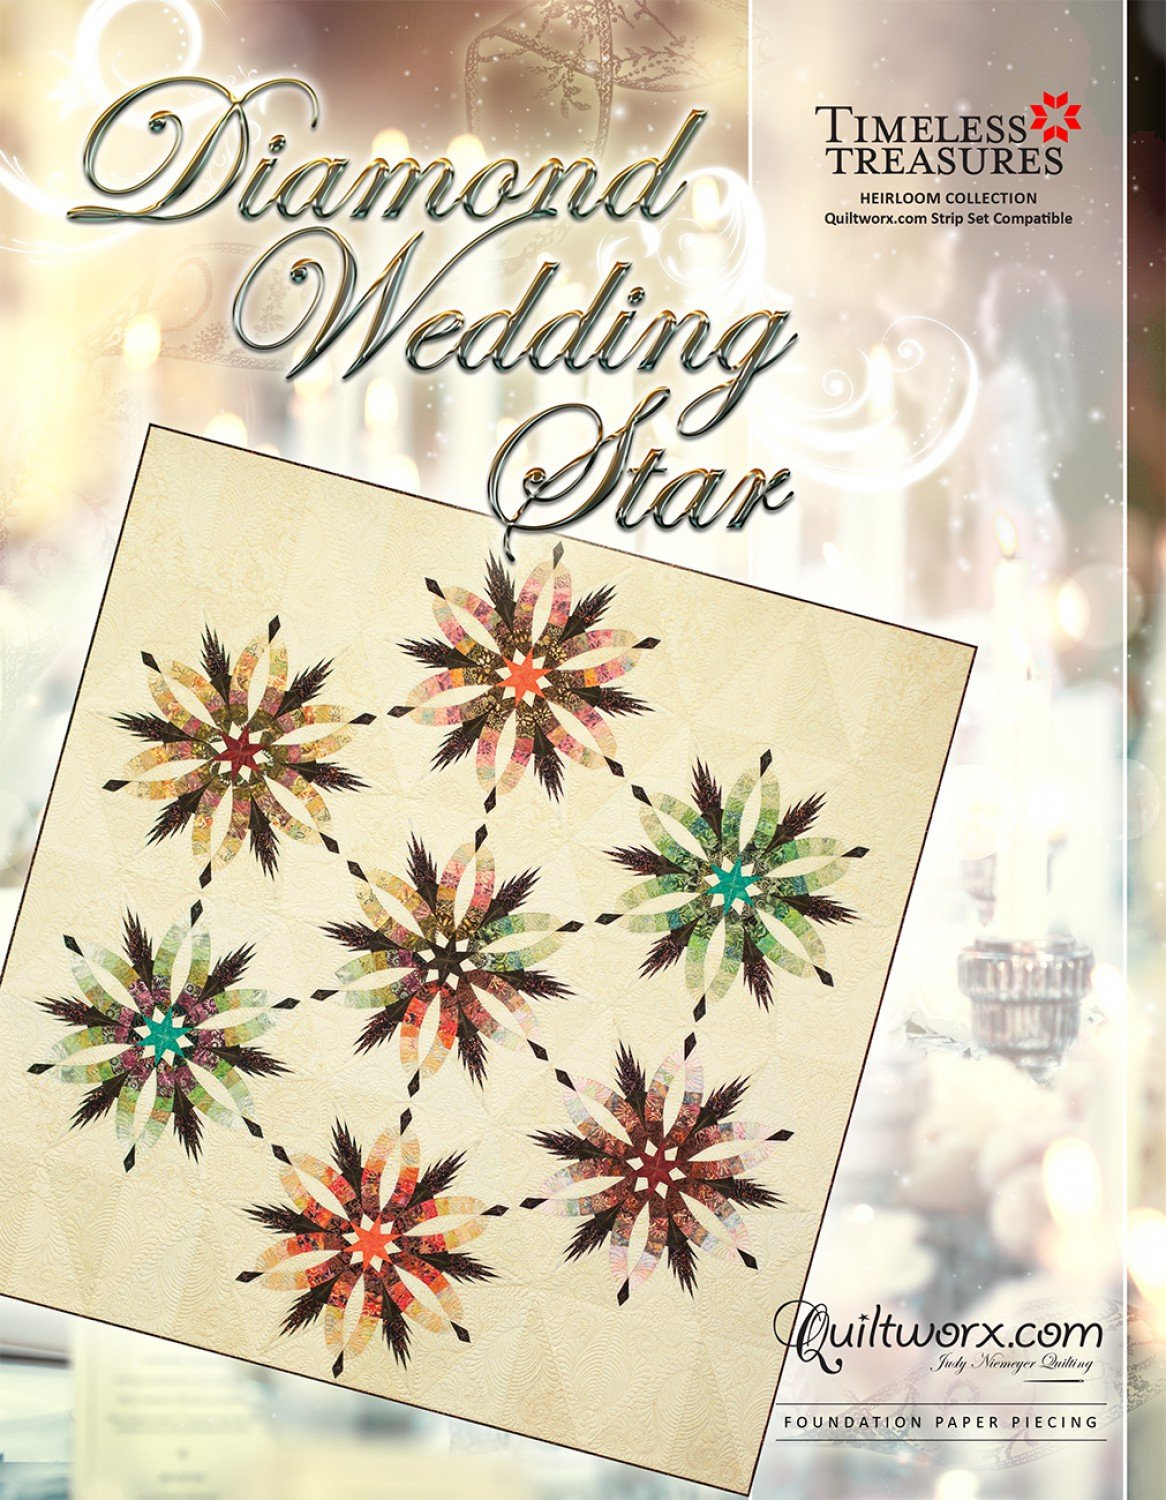 Diamond Wedding Star by Judy Neimeyer